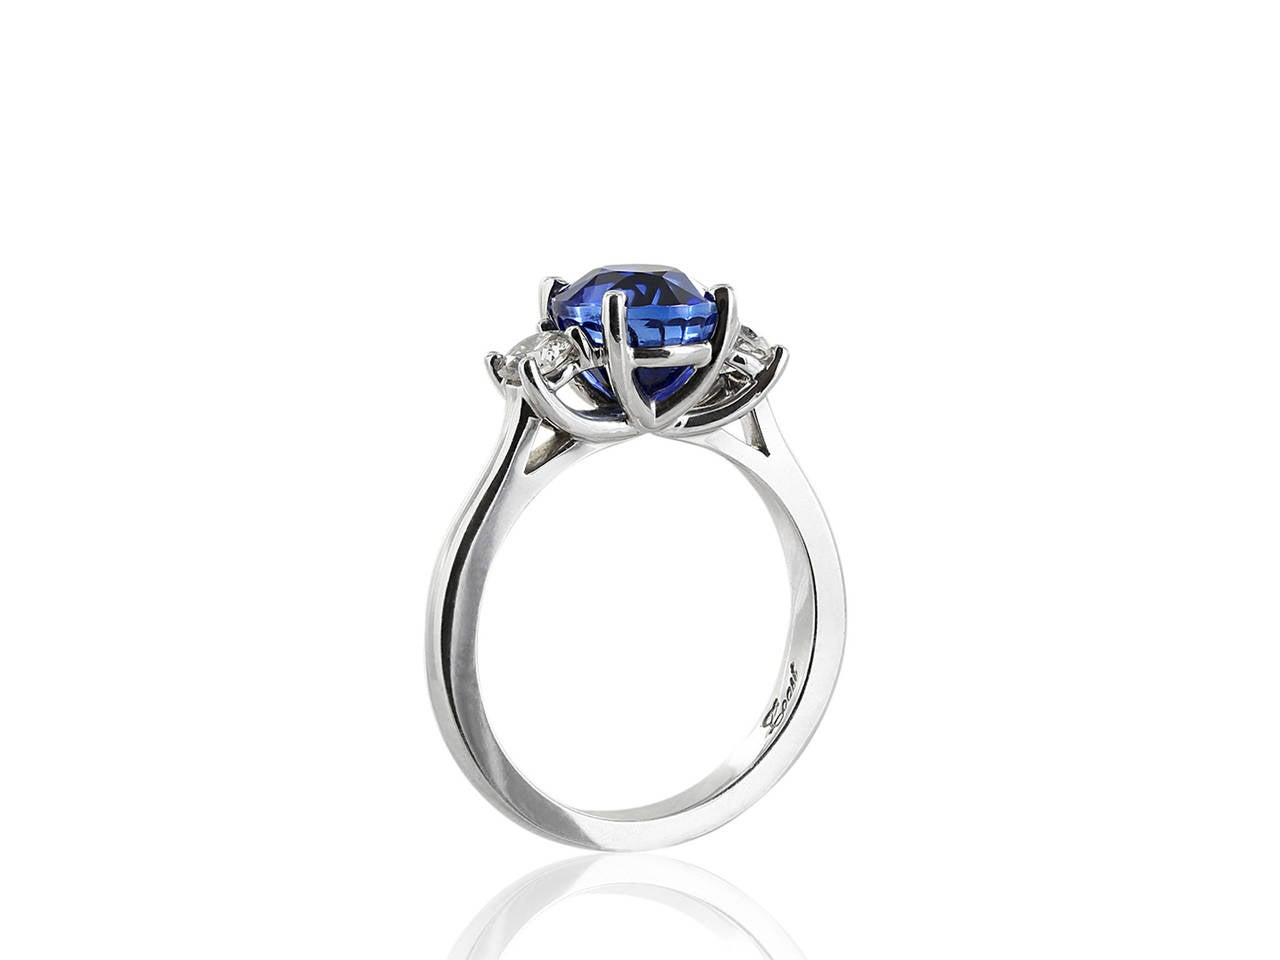 18 karat white gold 3 stone ring consisting of 1 round brilliant sapphire weighing 3.01 carats, the center stone is flanked by two round brilliant diamonds having a total weight .37 carats.